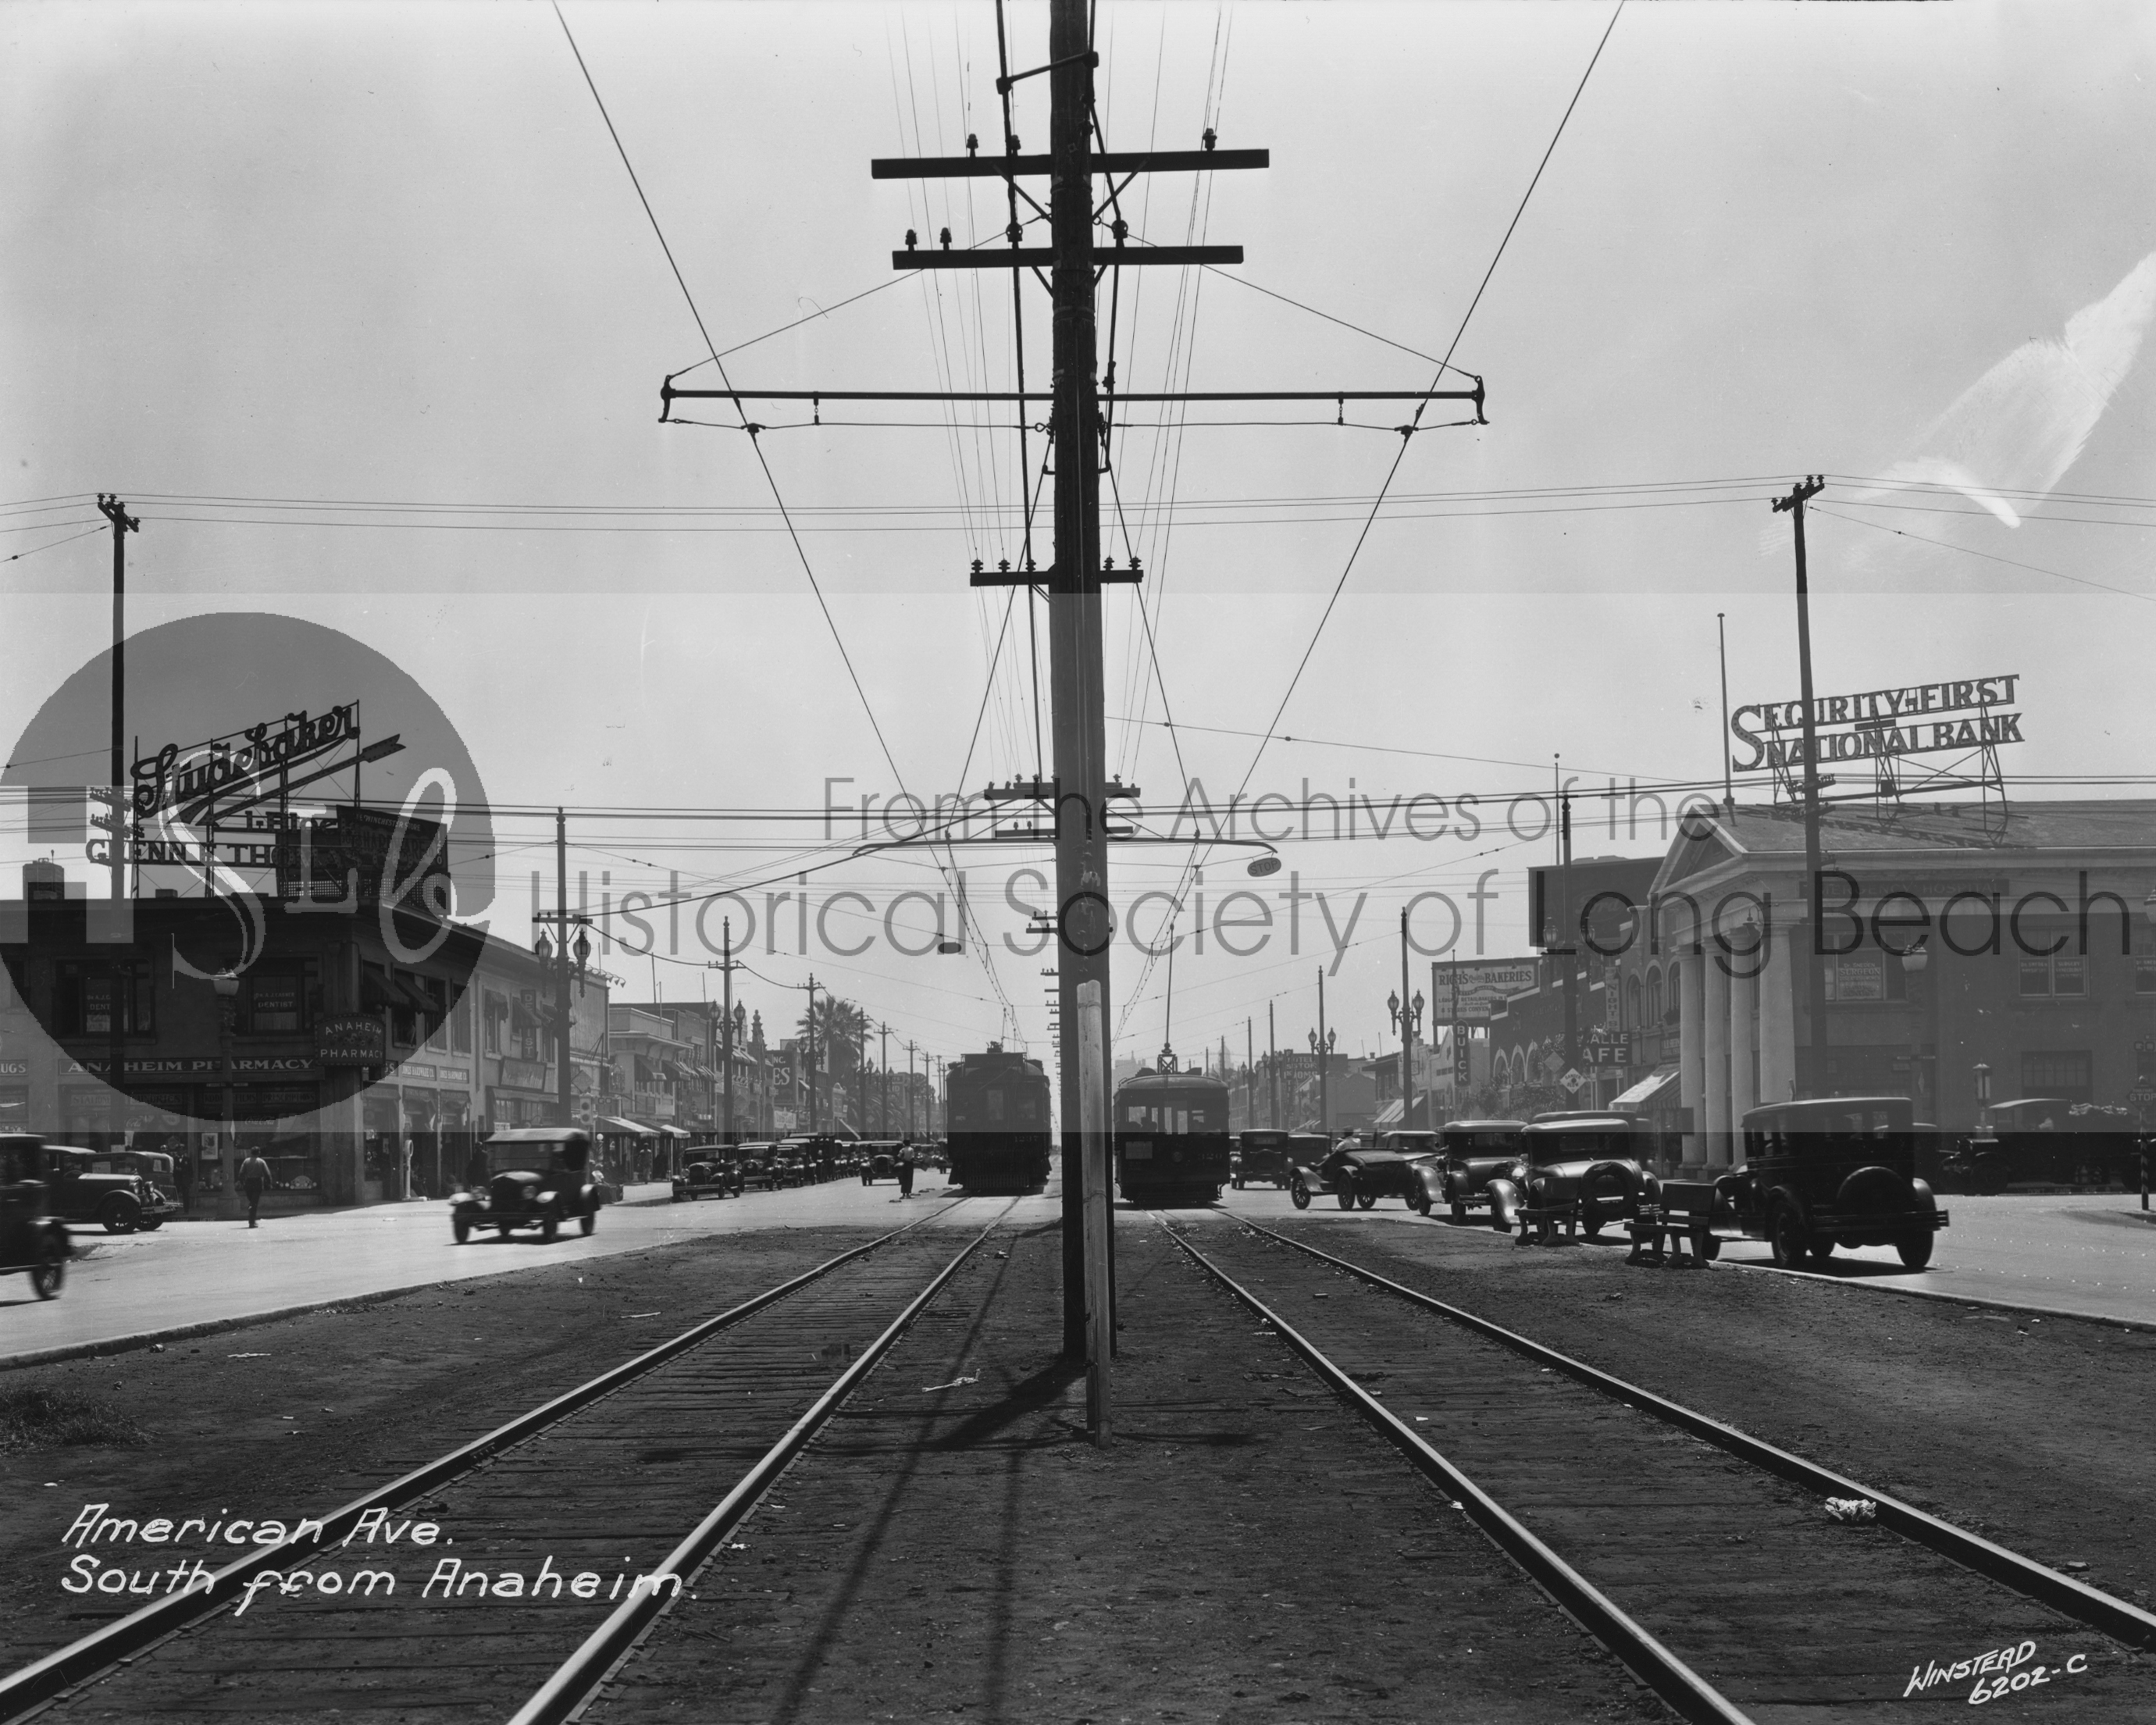 Historical photograph of long beach train tracks